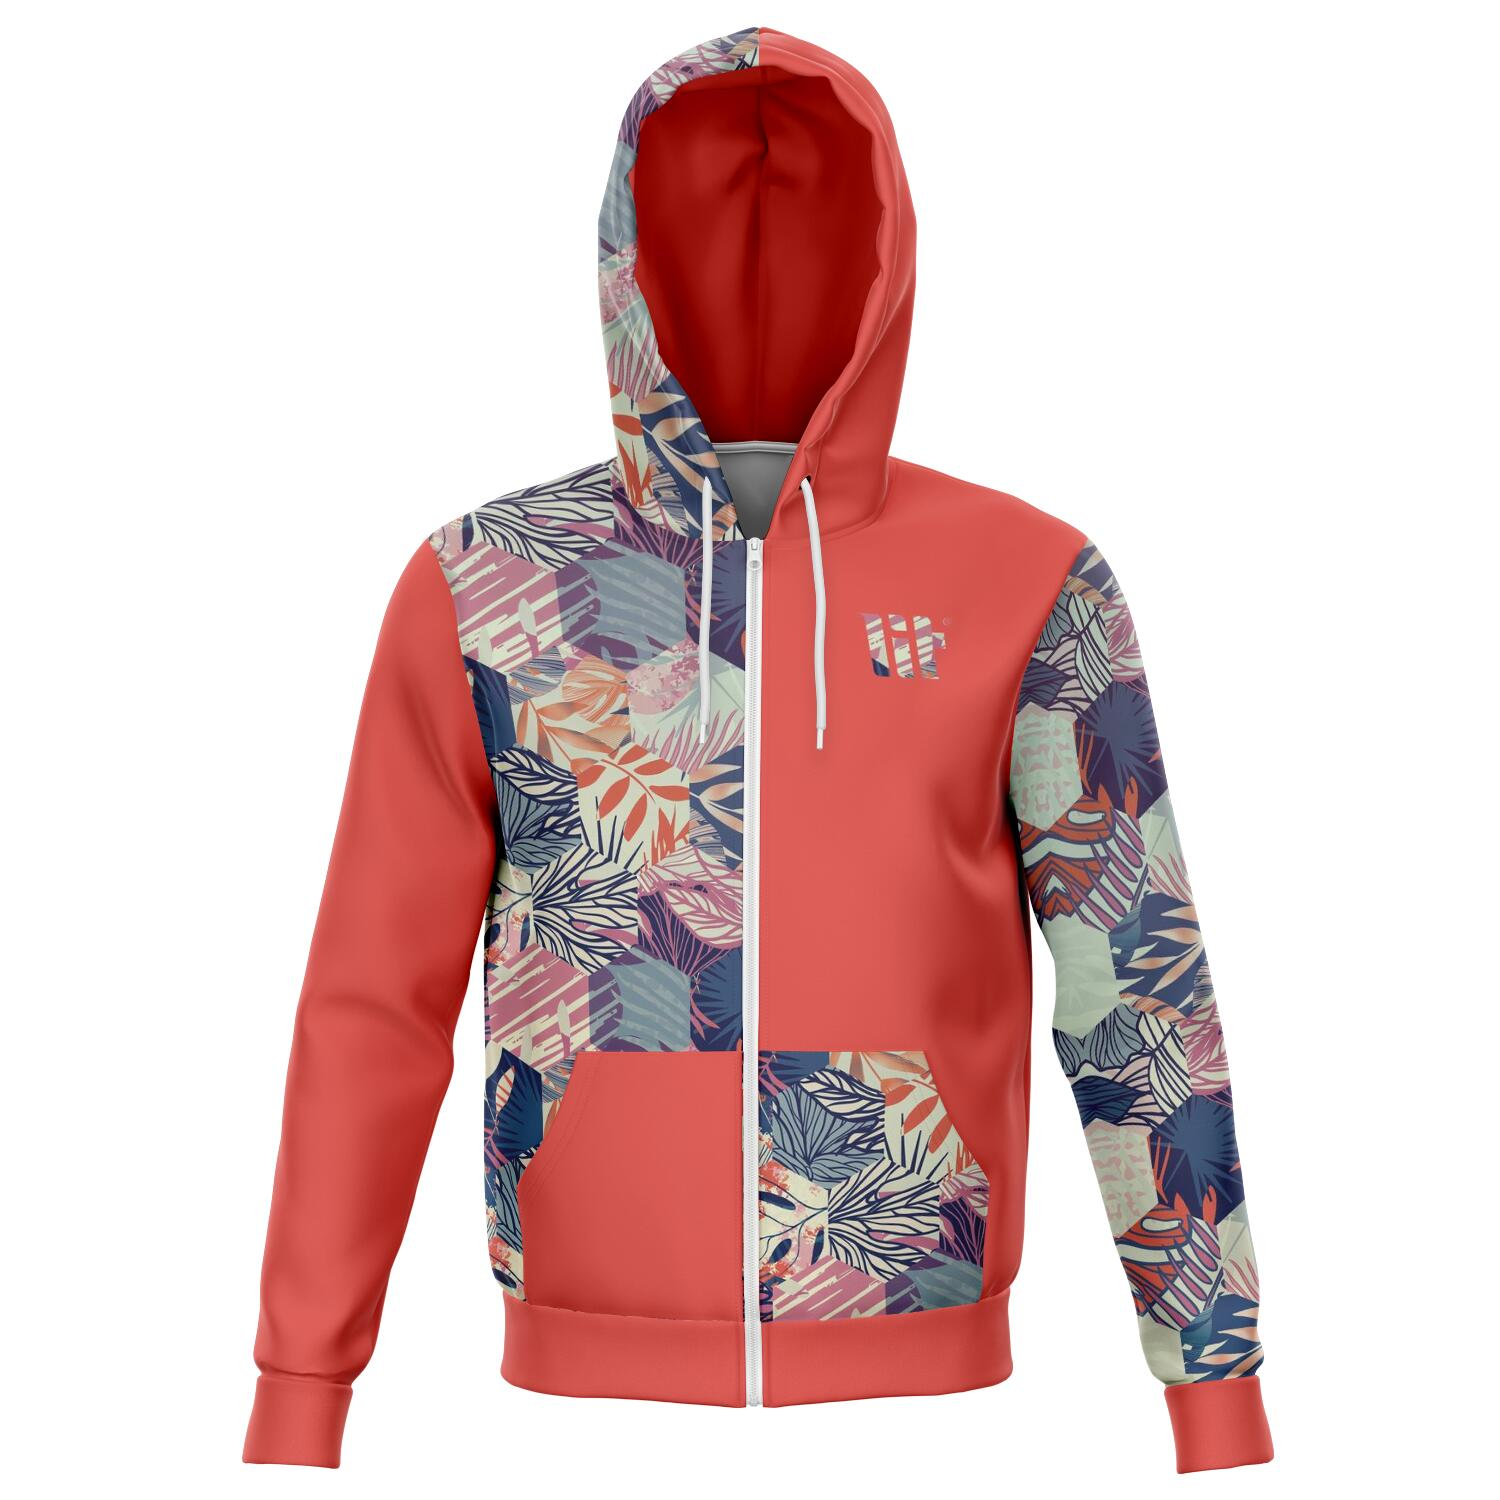 Thrive all over print zip up hoodie unisex - front image